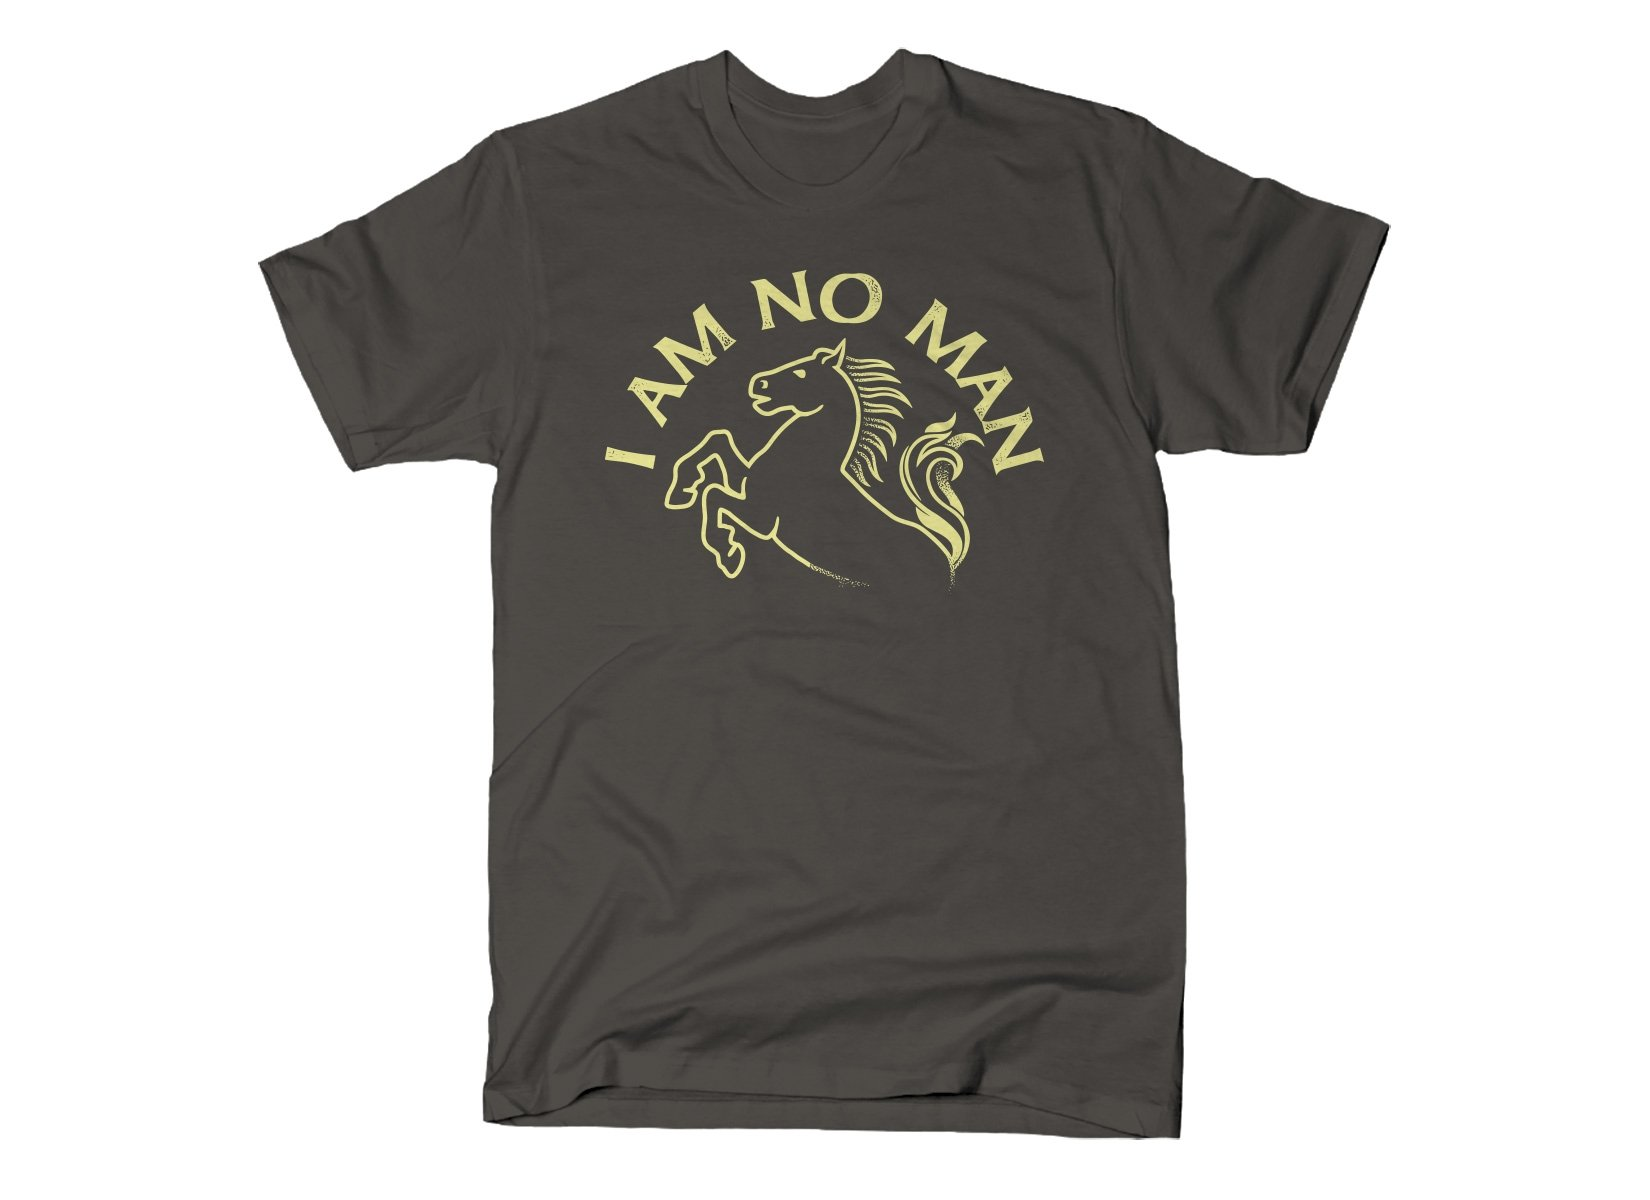 I Am No Man on Mens T-Shirt